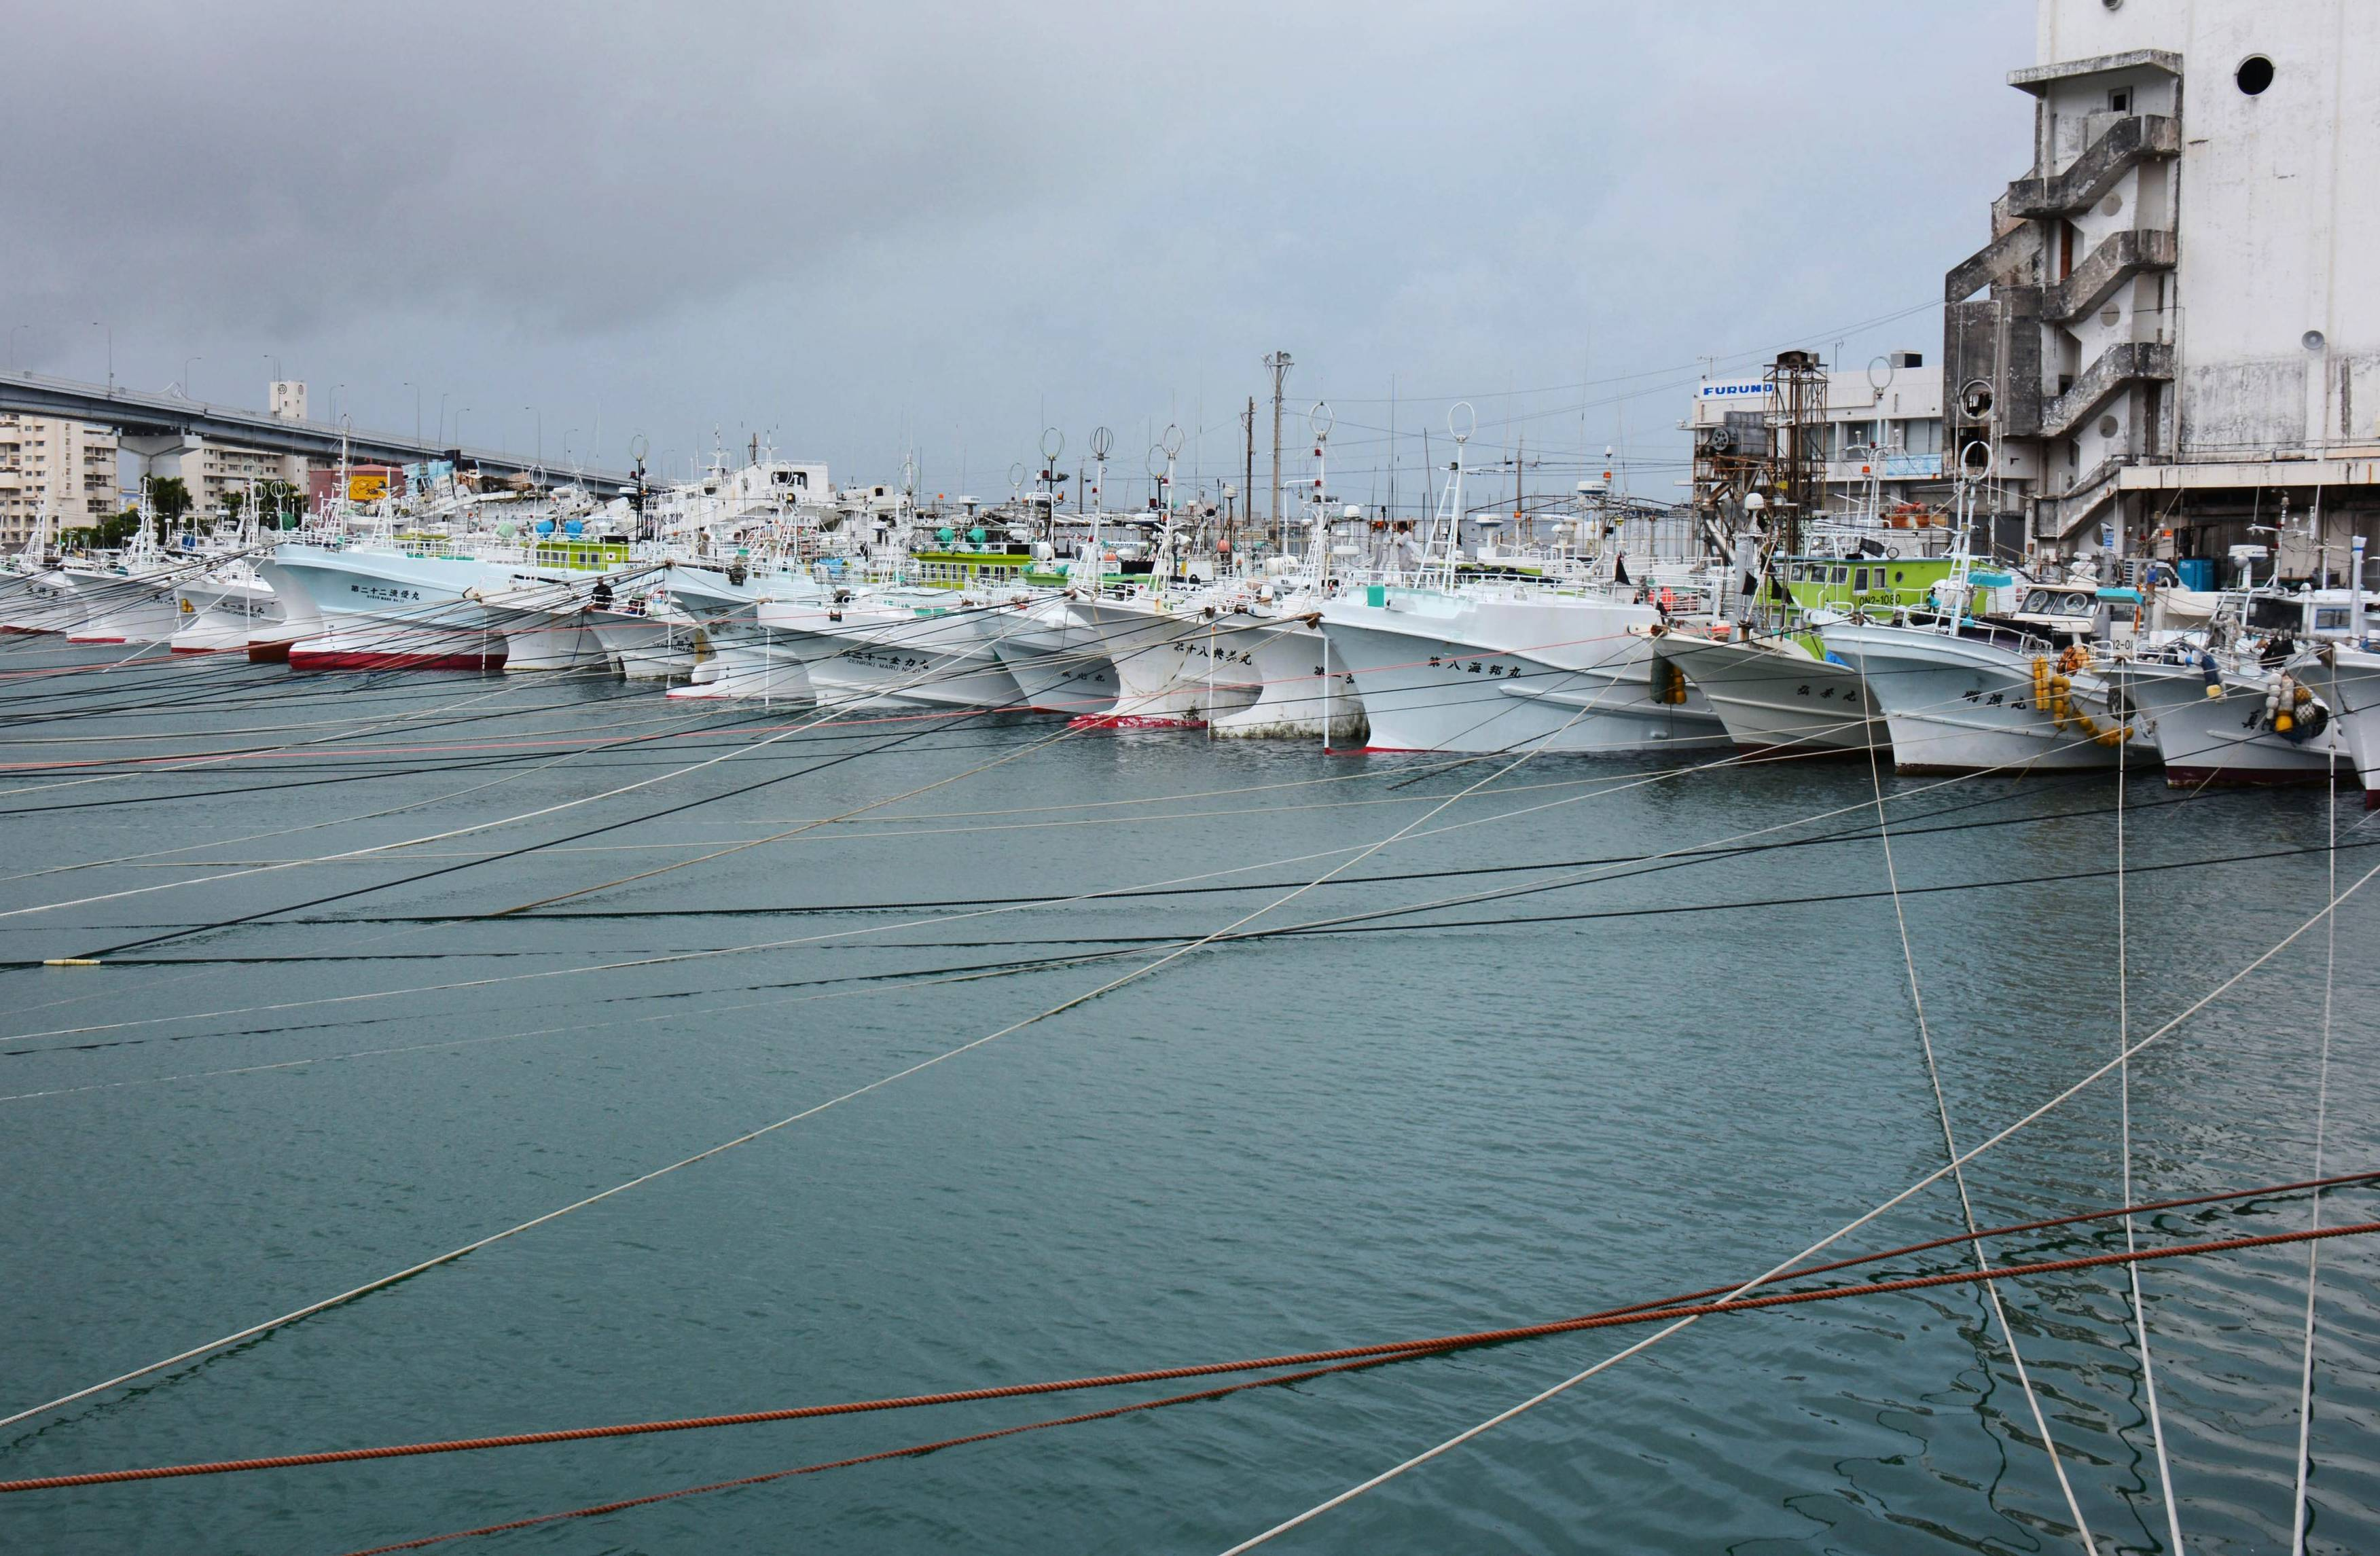 Fishing boats are tied with ropes at Tomari fishing port in Naha, southern Japan islands of Okinawa, Monday. Japan has issued warnings over a powerful typhoon churning toward the southern islands of Okinawa. The Japan Meteorological Agency says the storm could be one of the strongest to hit Japan in decades.